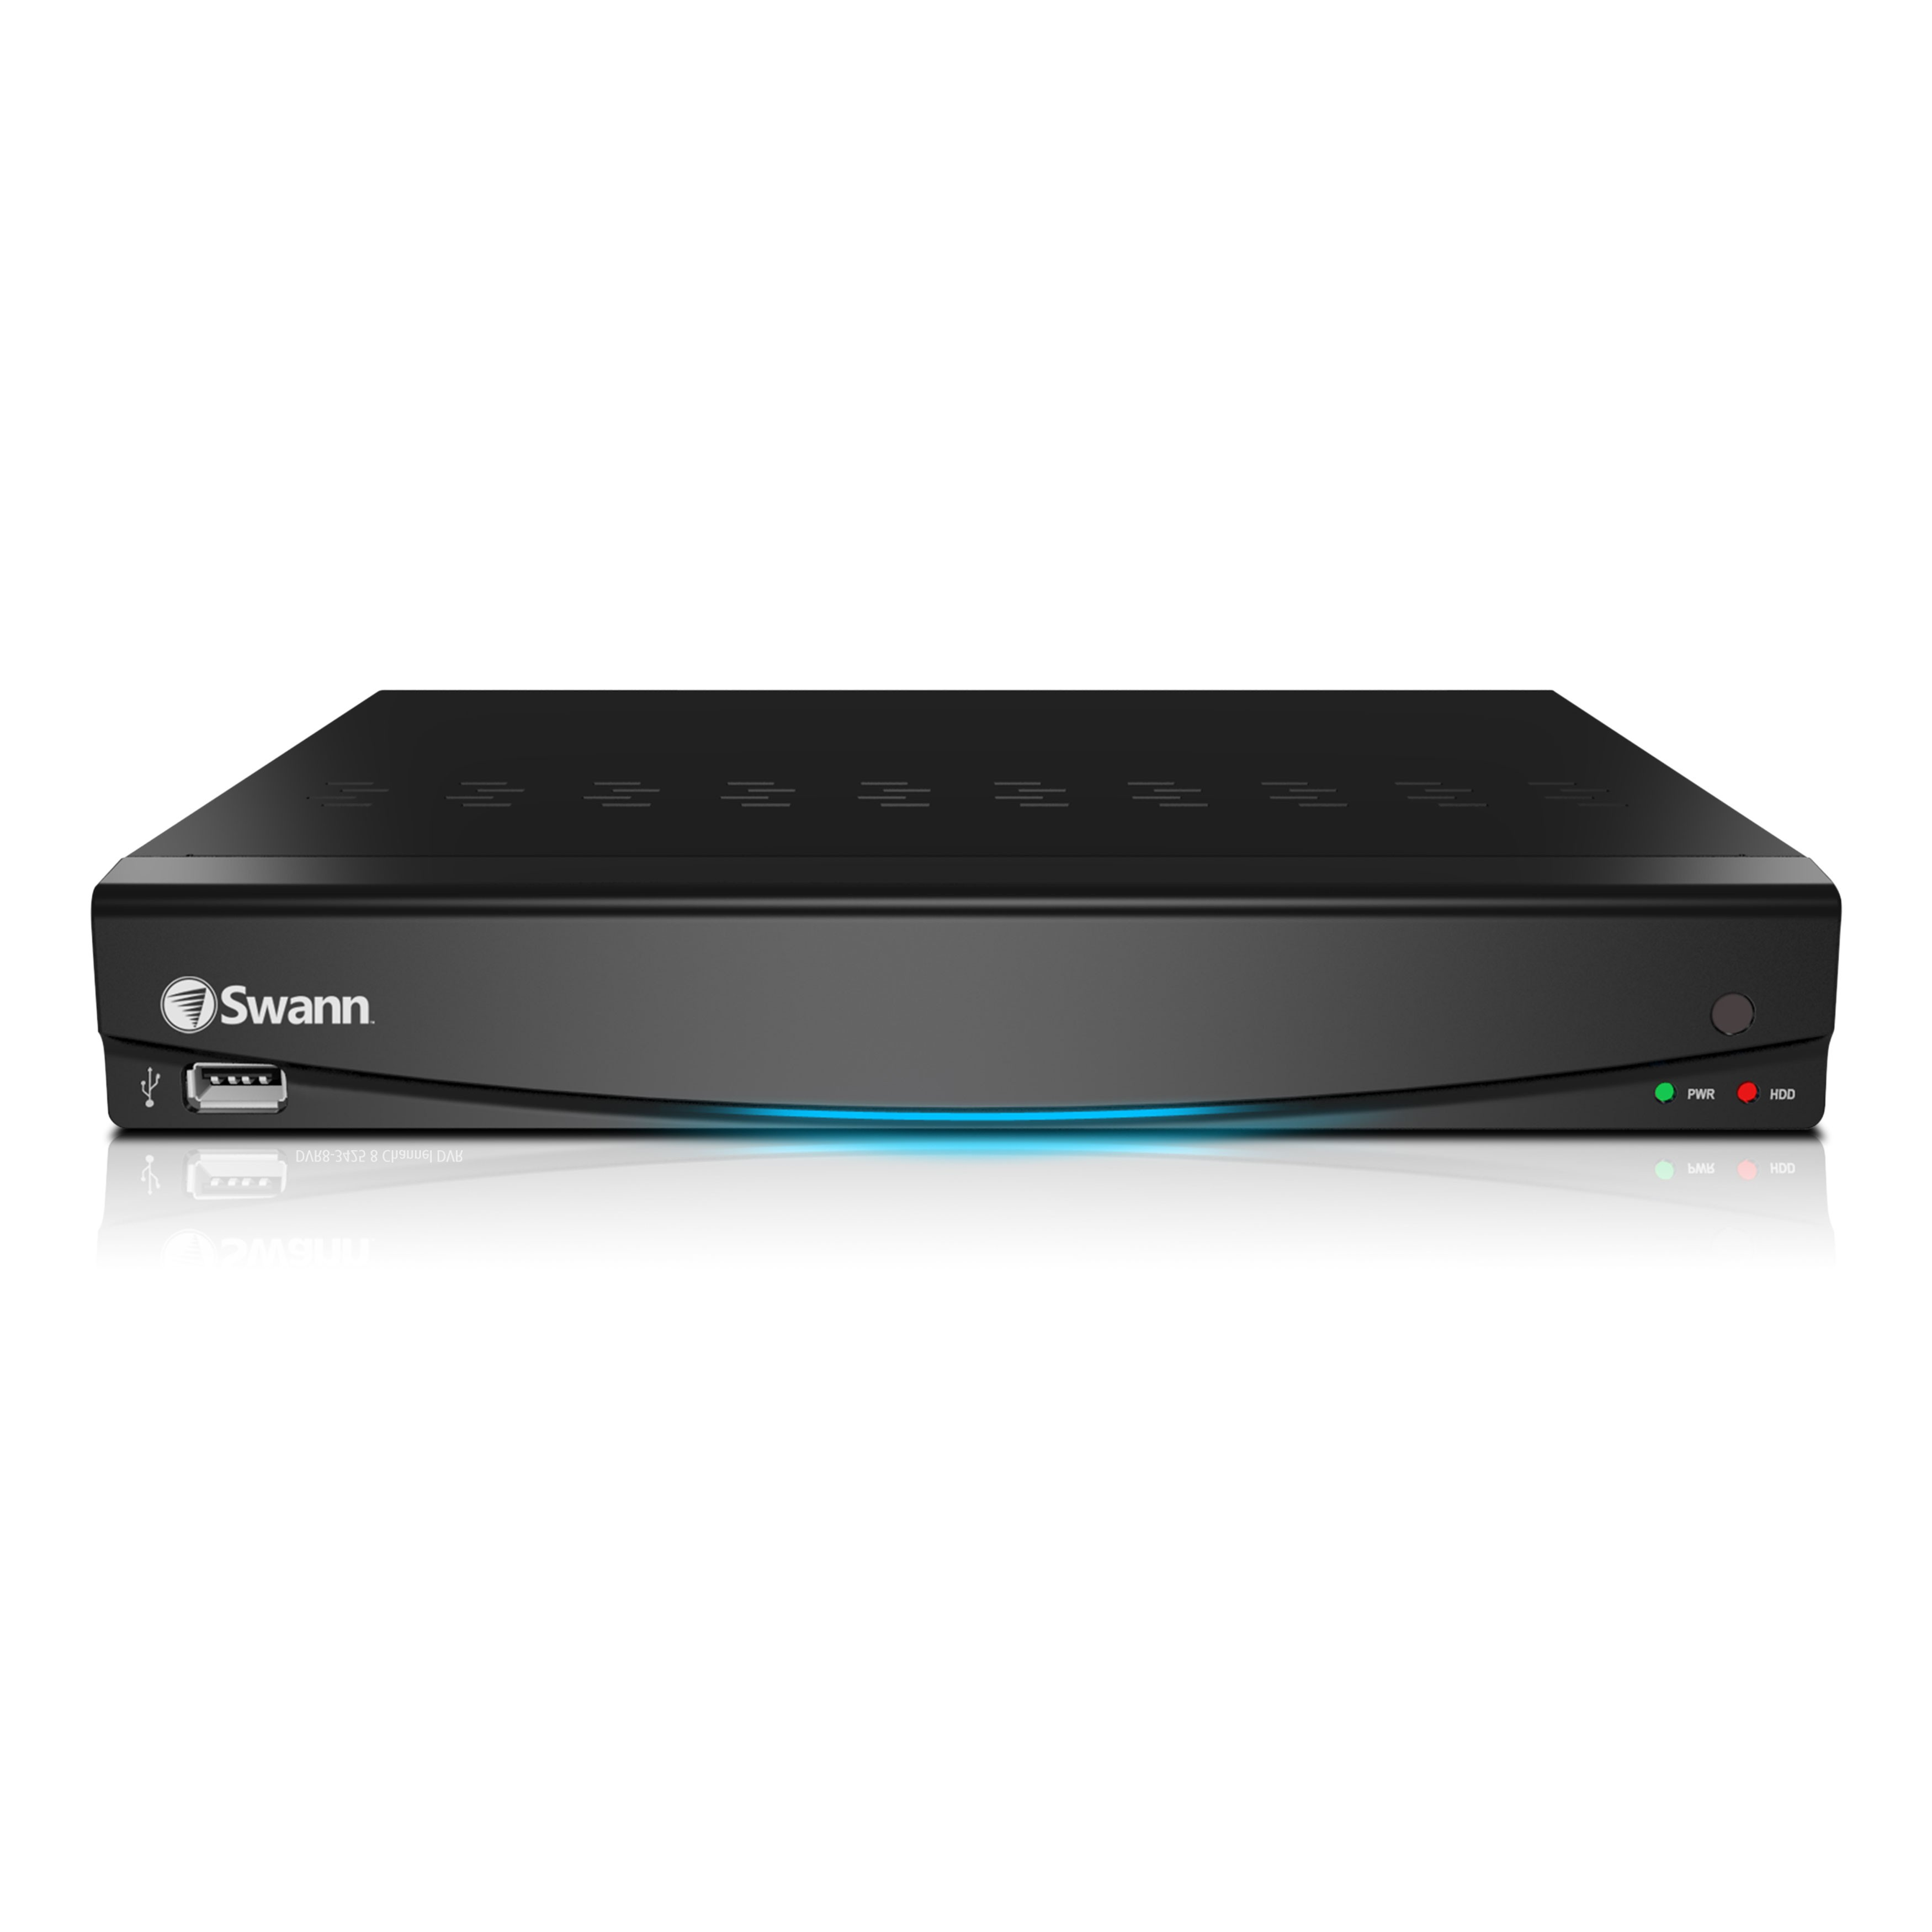 Swann SWDVR-83425H DVR8-3450 8 Channel 960H Security DVR with 500GB Hard Drive